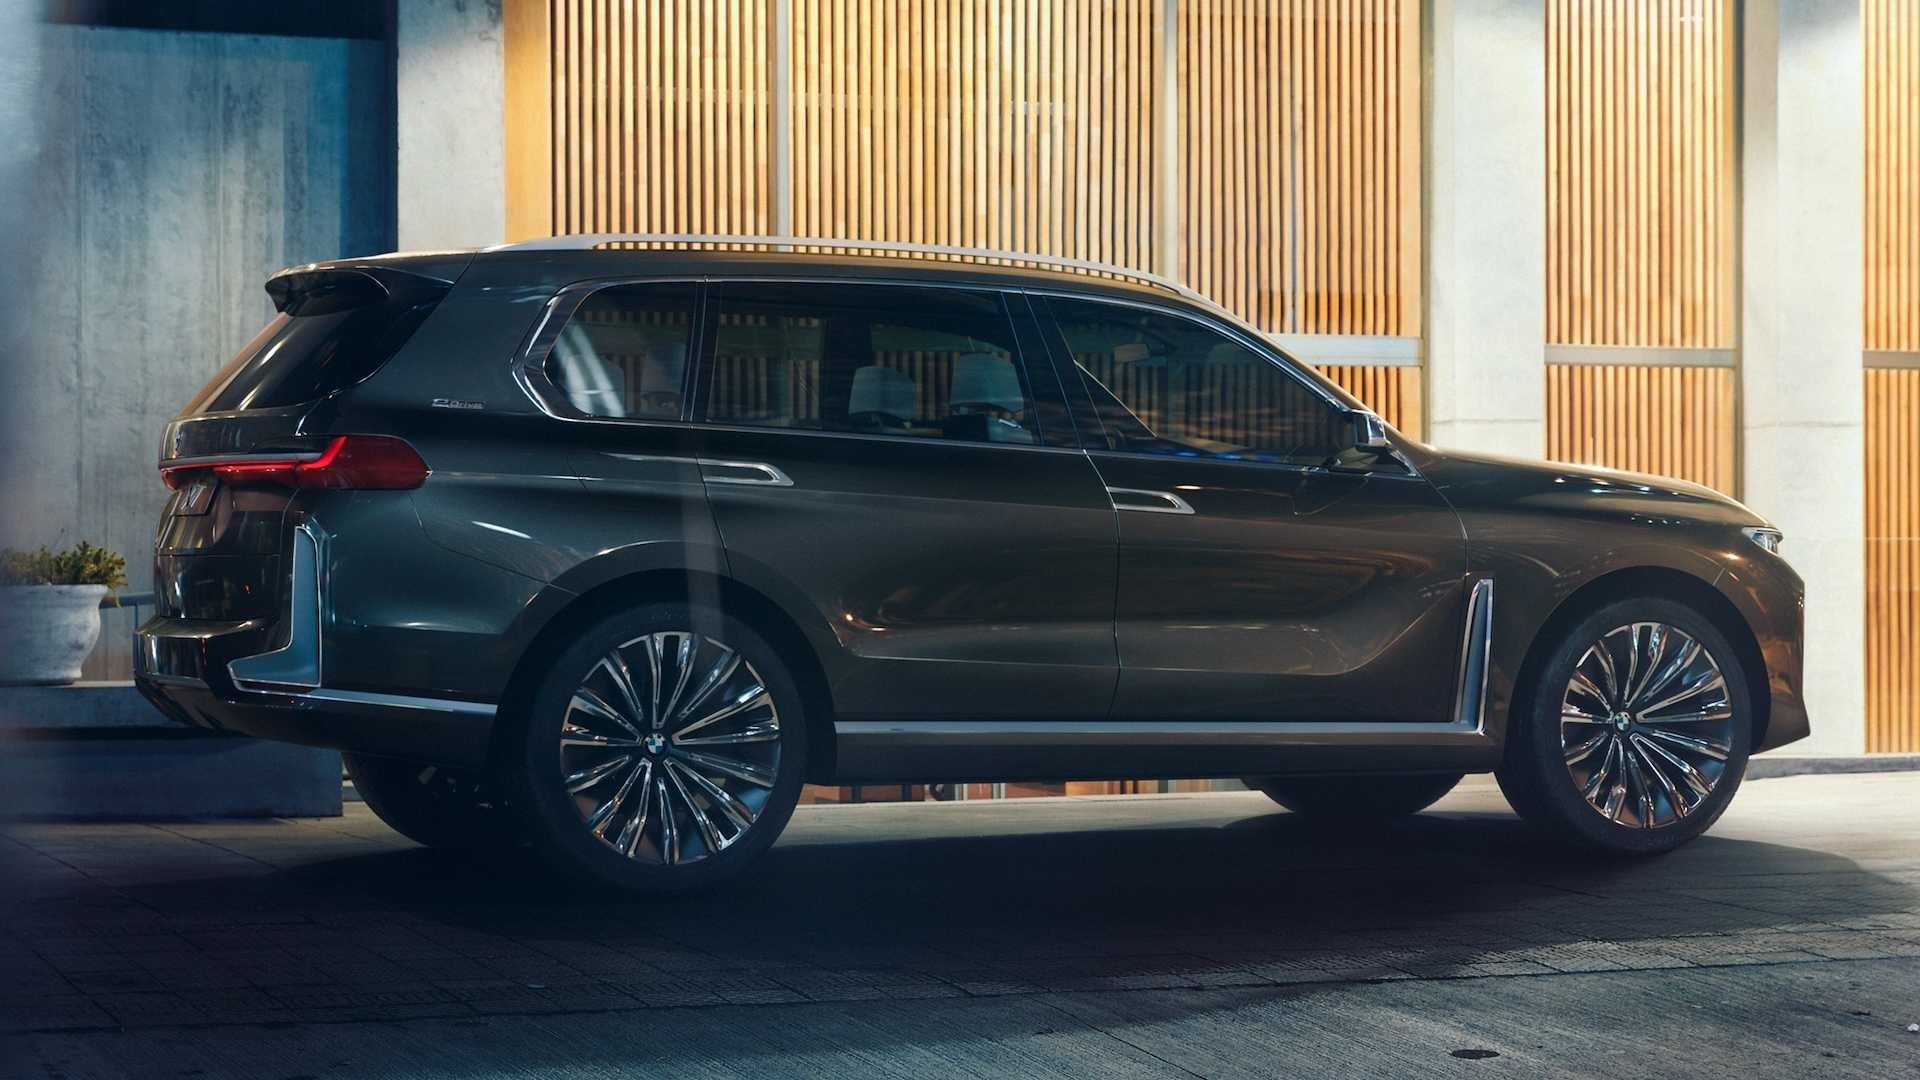 BMW X8 M Could Gets Its Own Platform, No X7 M Planned: Report - Motor1